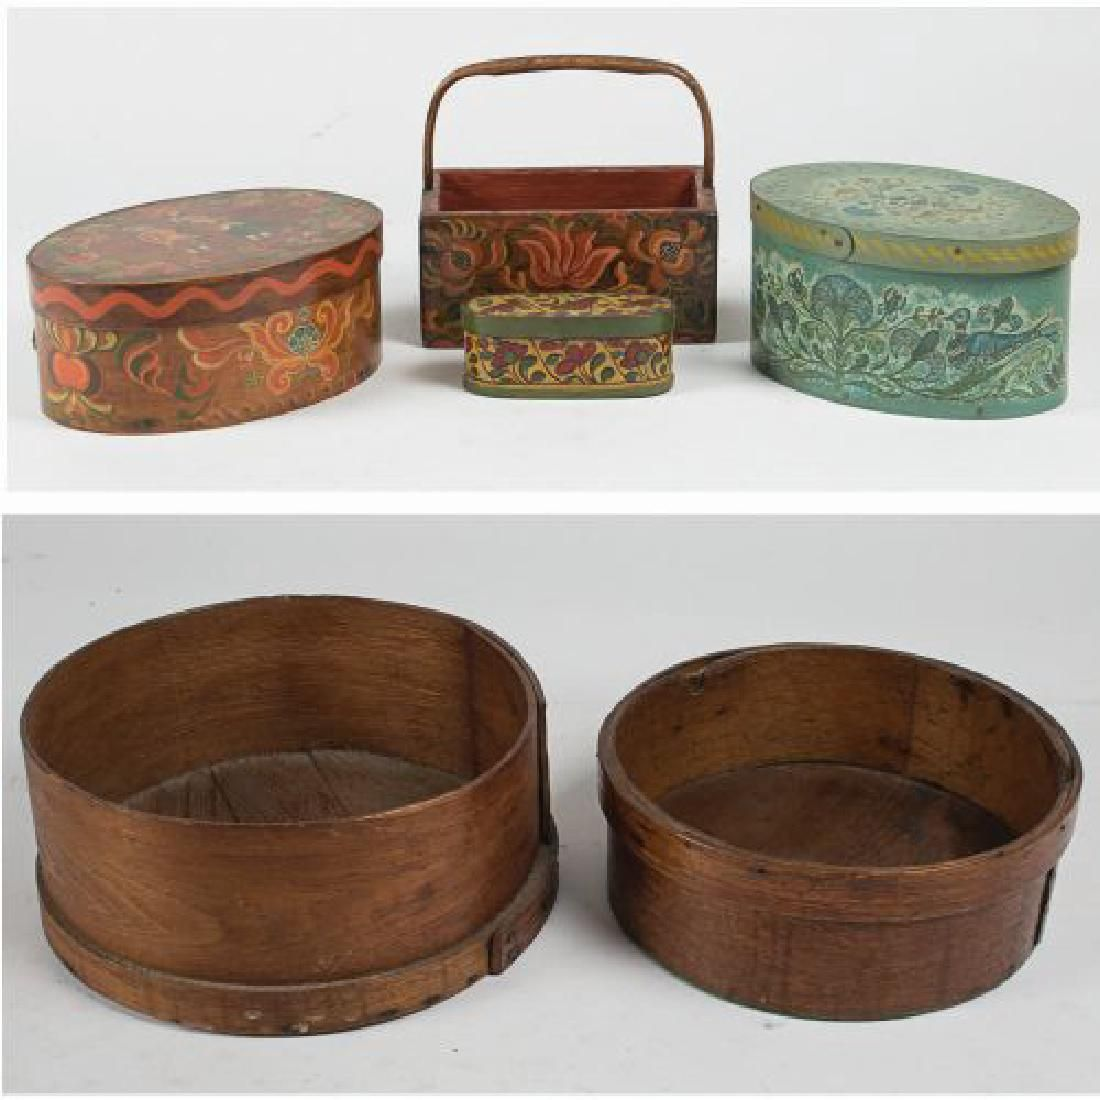 Two American Shaker Baskets, 19th Century,